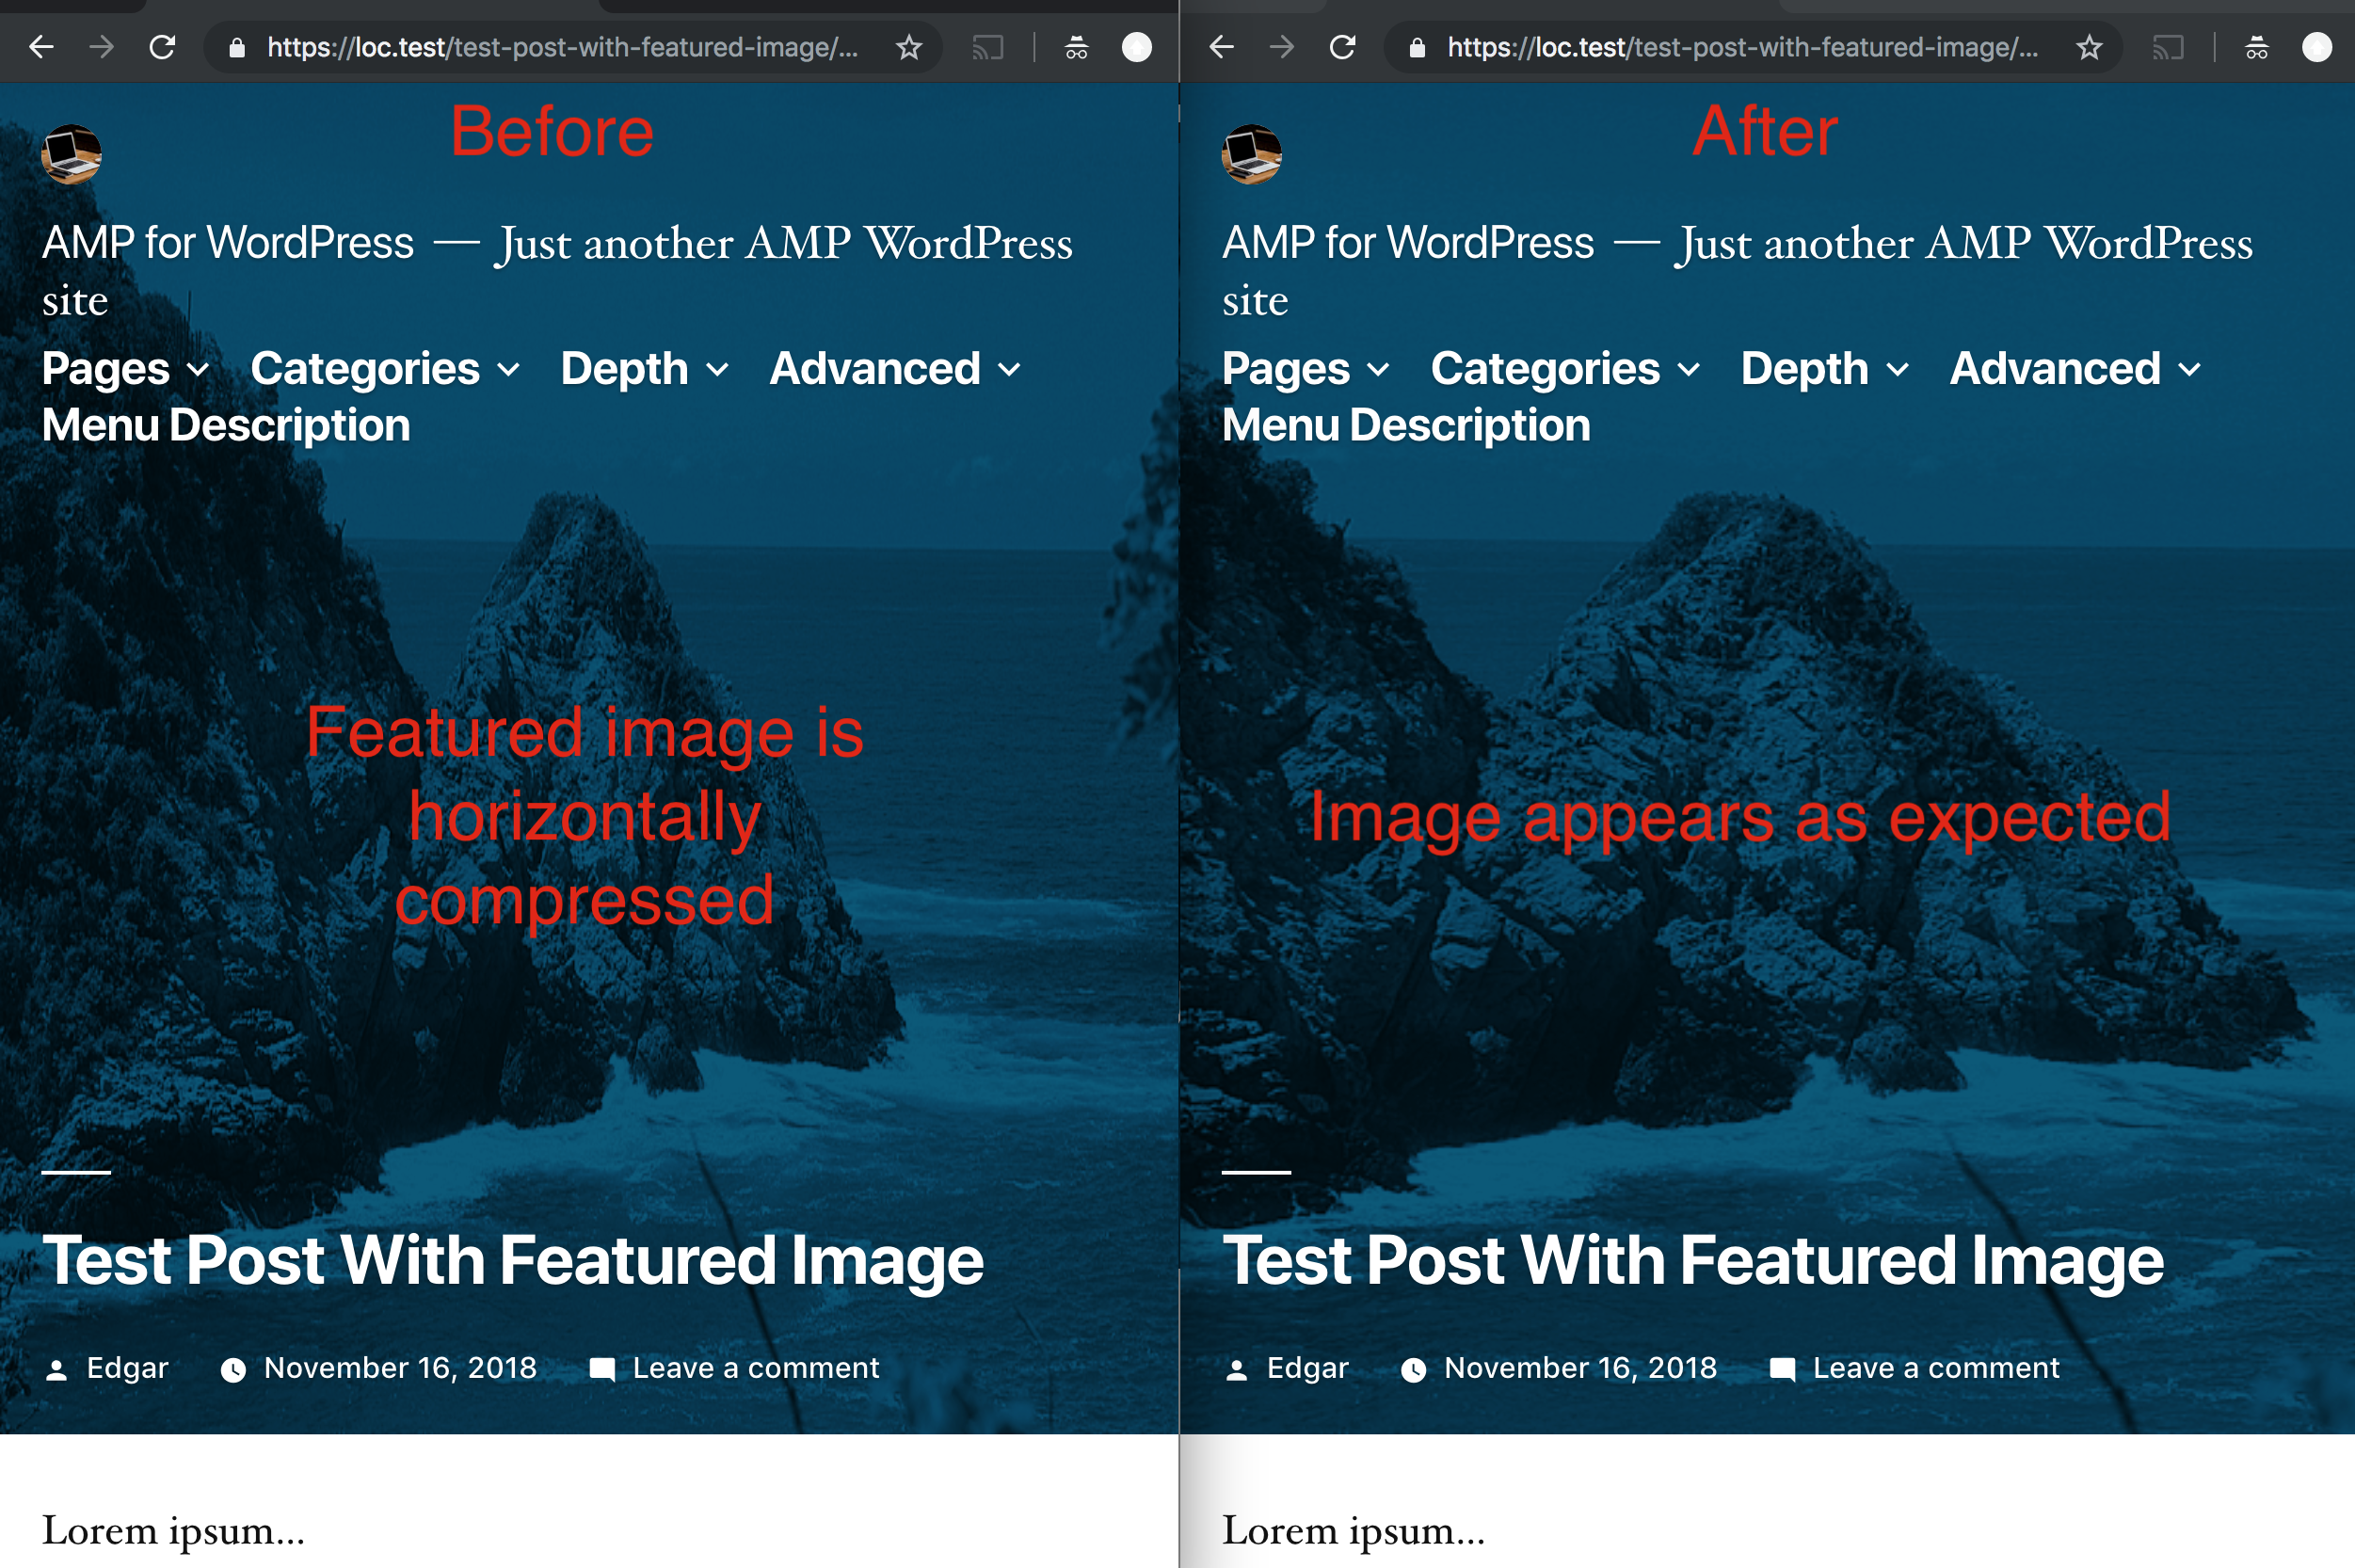 featured-image-as-expected